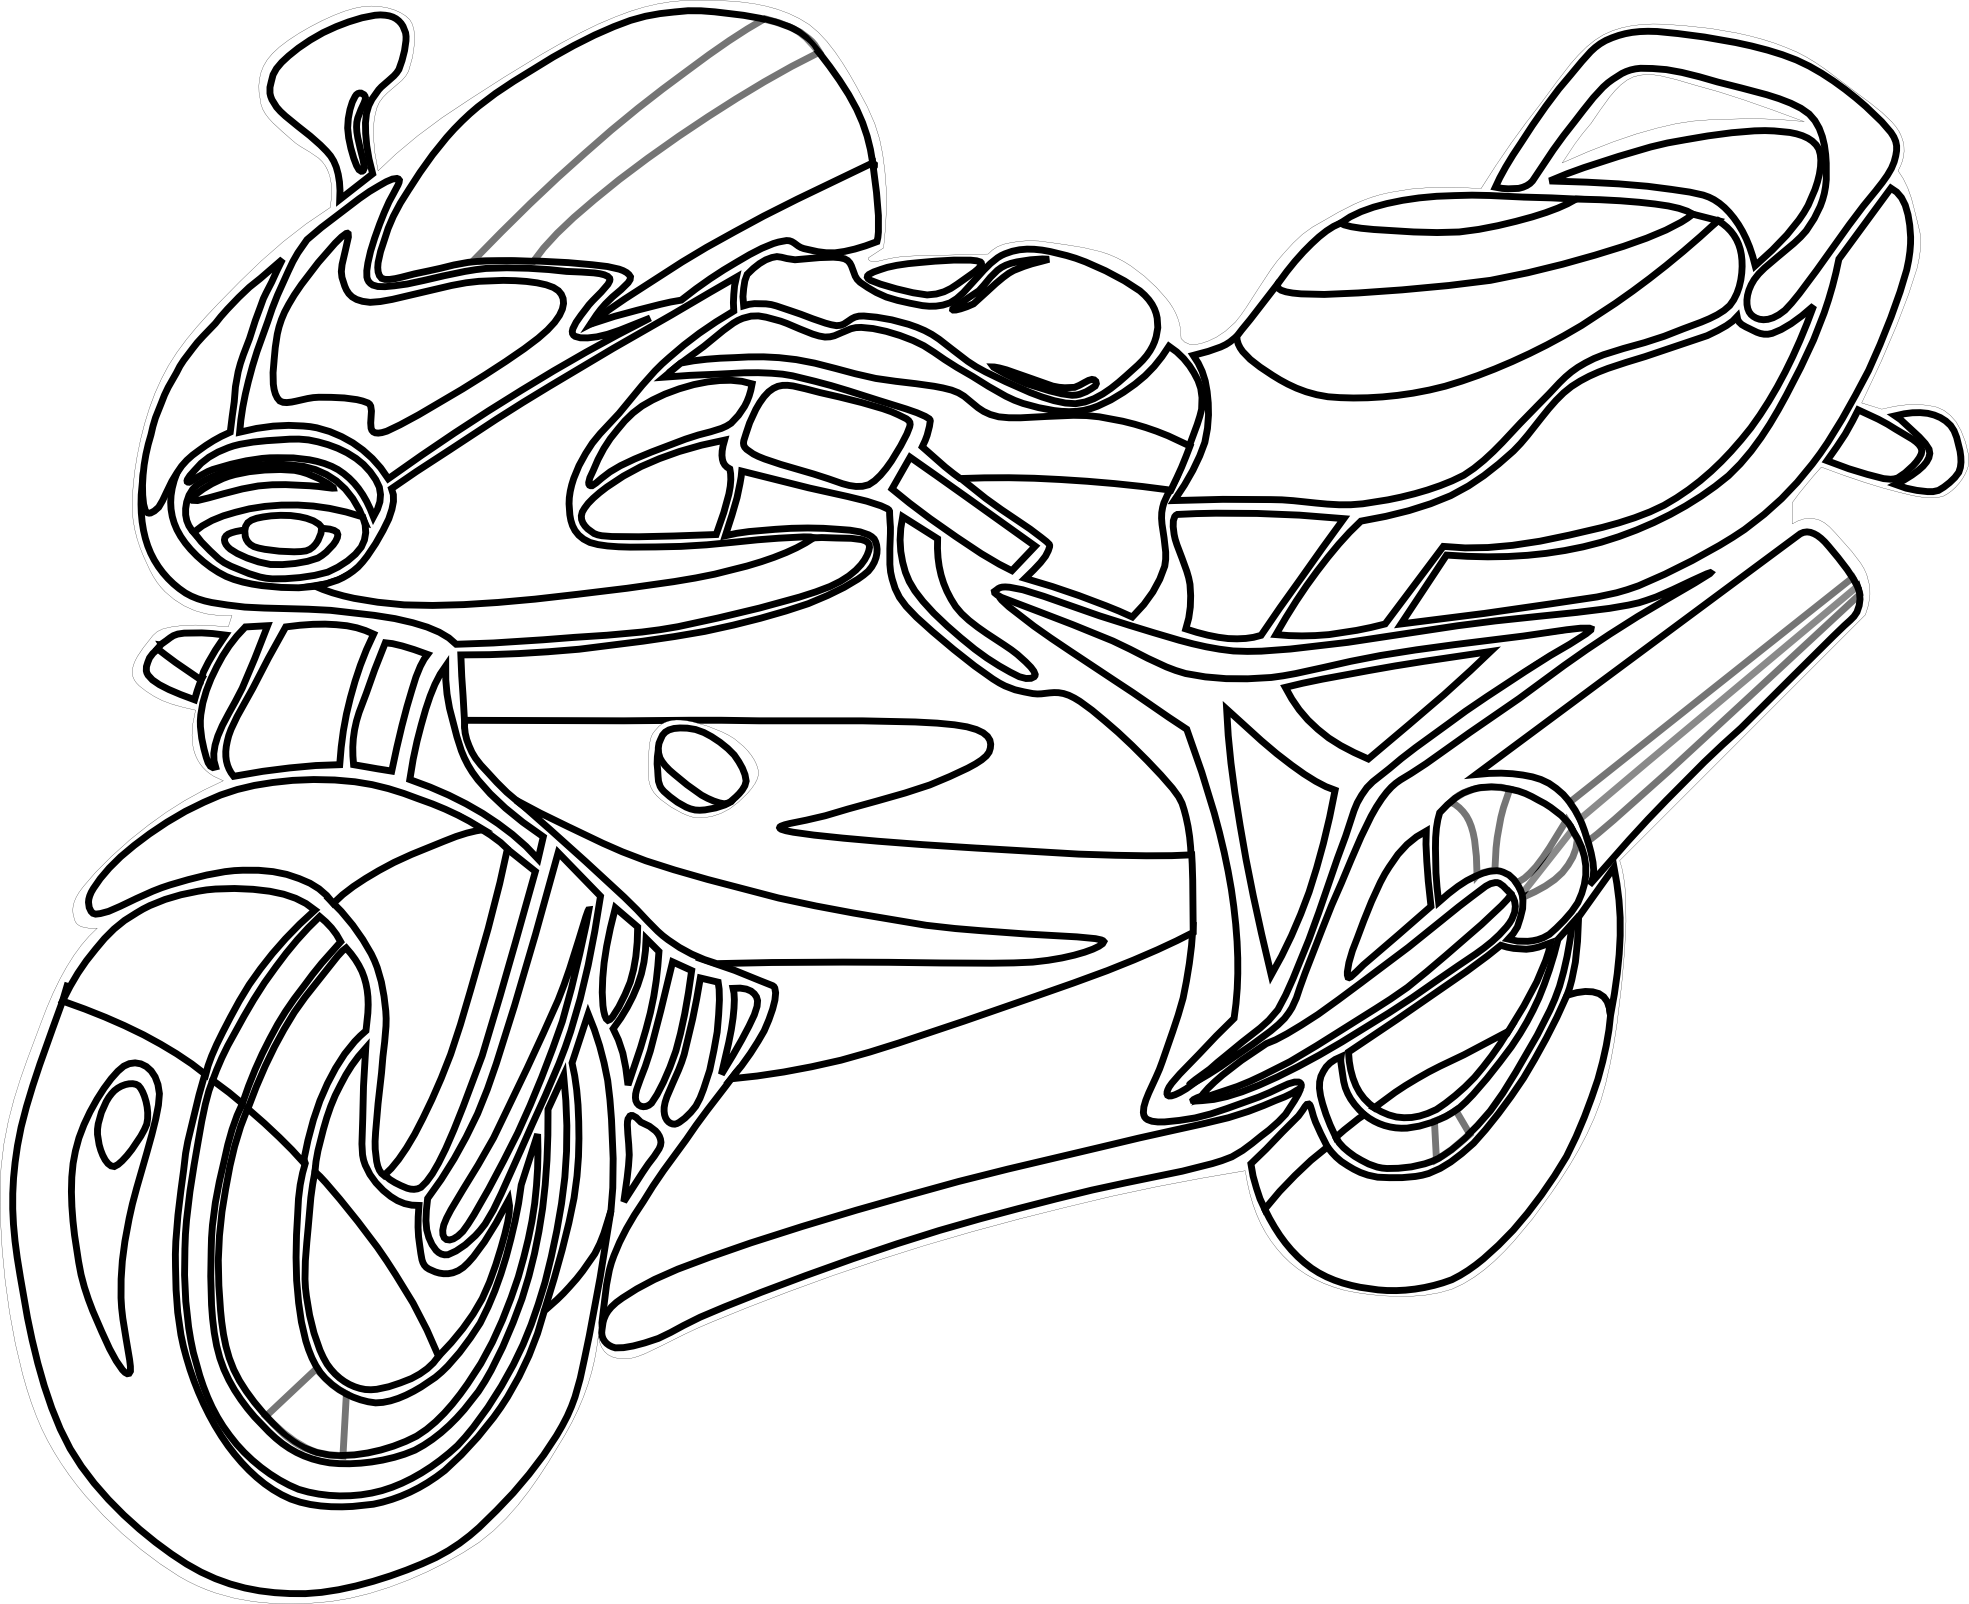 bike coloring pages - photo #17